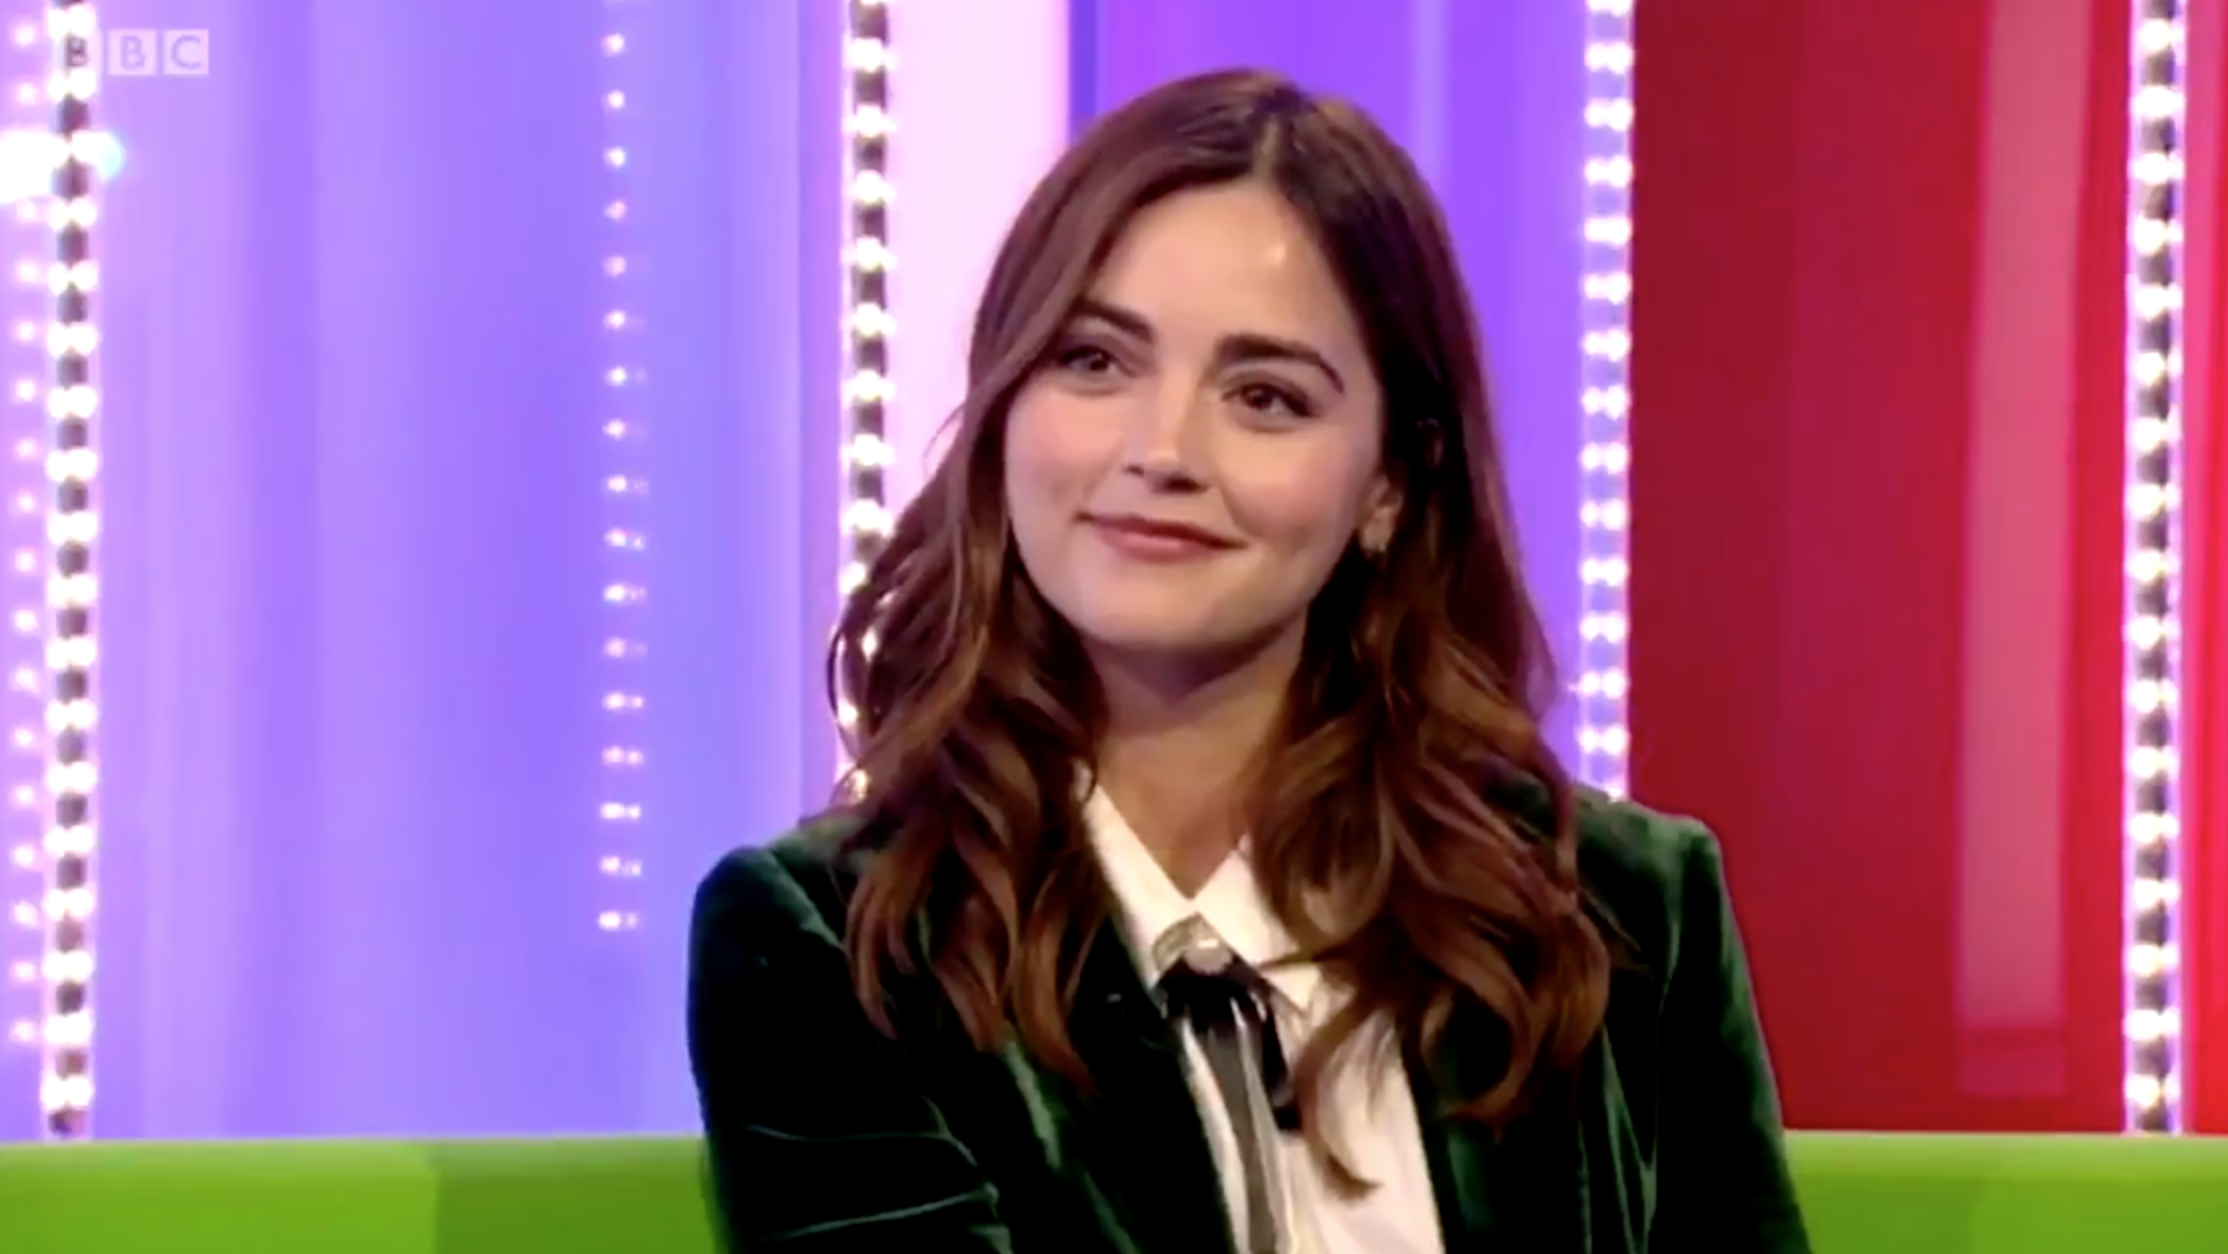 Doctor Who and Victoria's Jenna Coleman to star in brand new BBC and Netflix drama